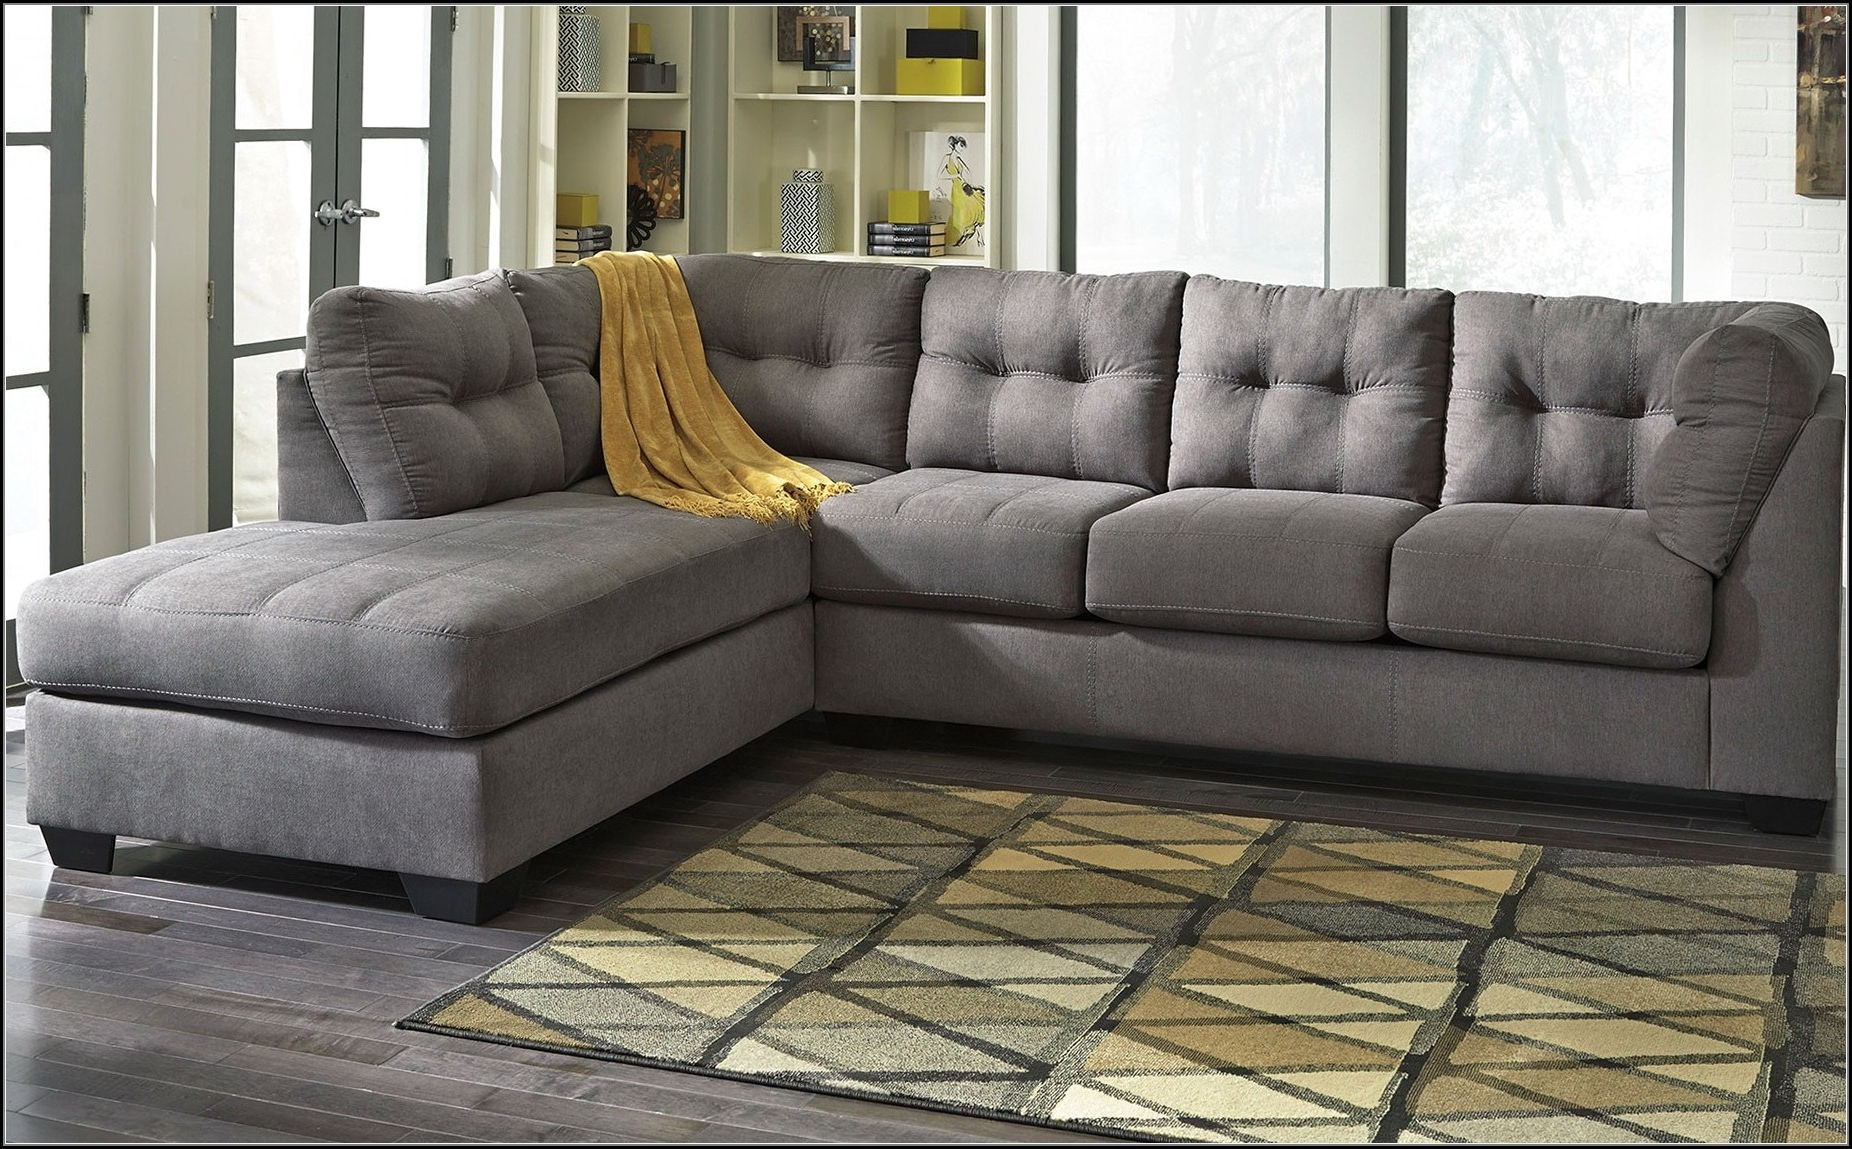 Current Charcoal Gray Sectional Sofas With Chaise Lounge Within Remarkable Charcoal Gray Sectional Sofa With Chaise Lounge 77 For (View 3 of 15)